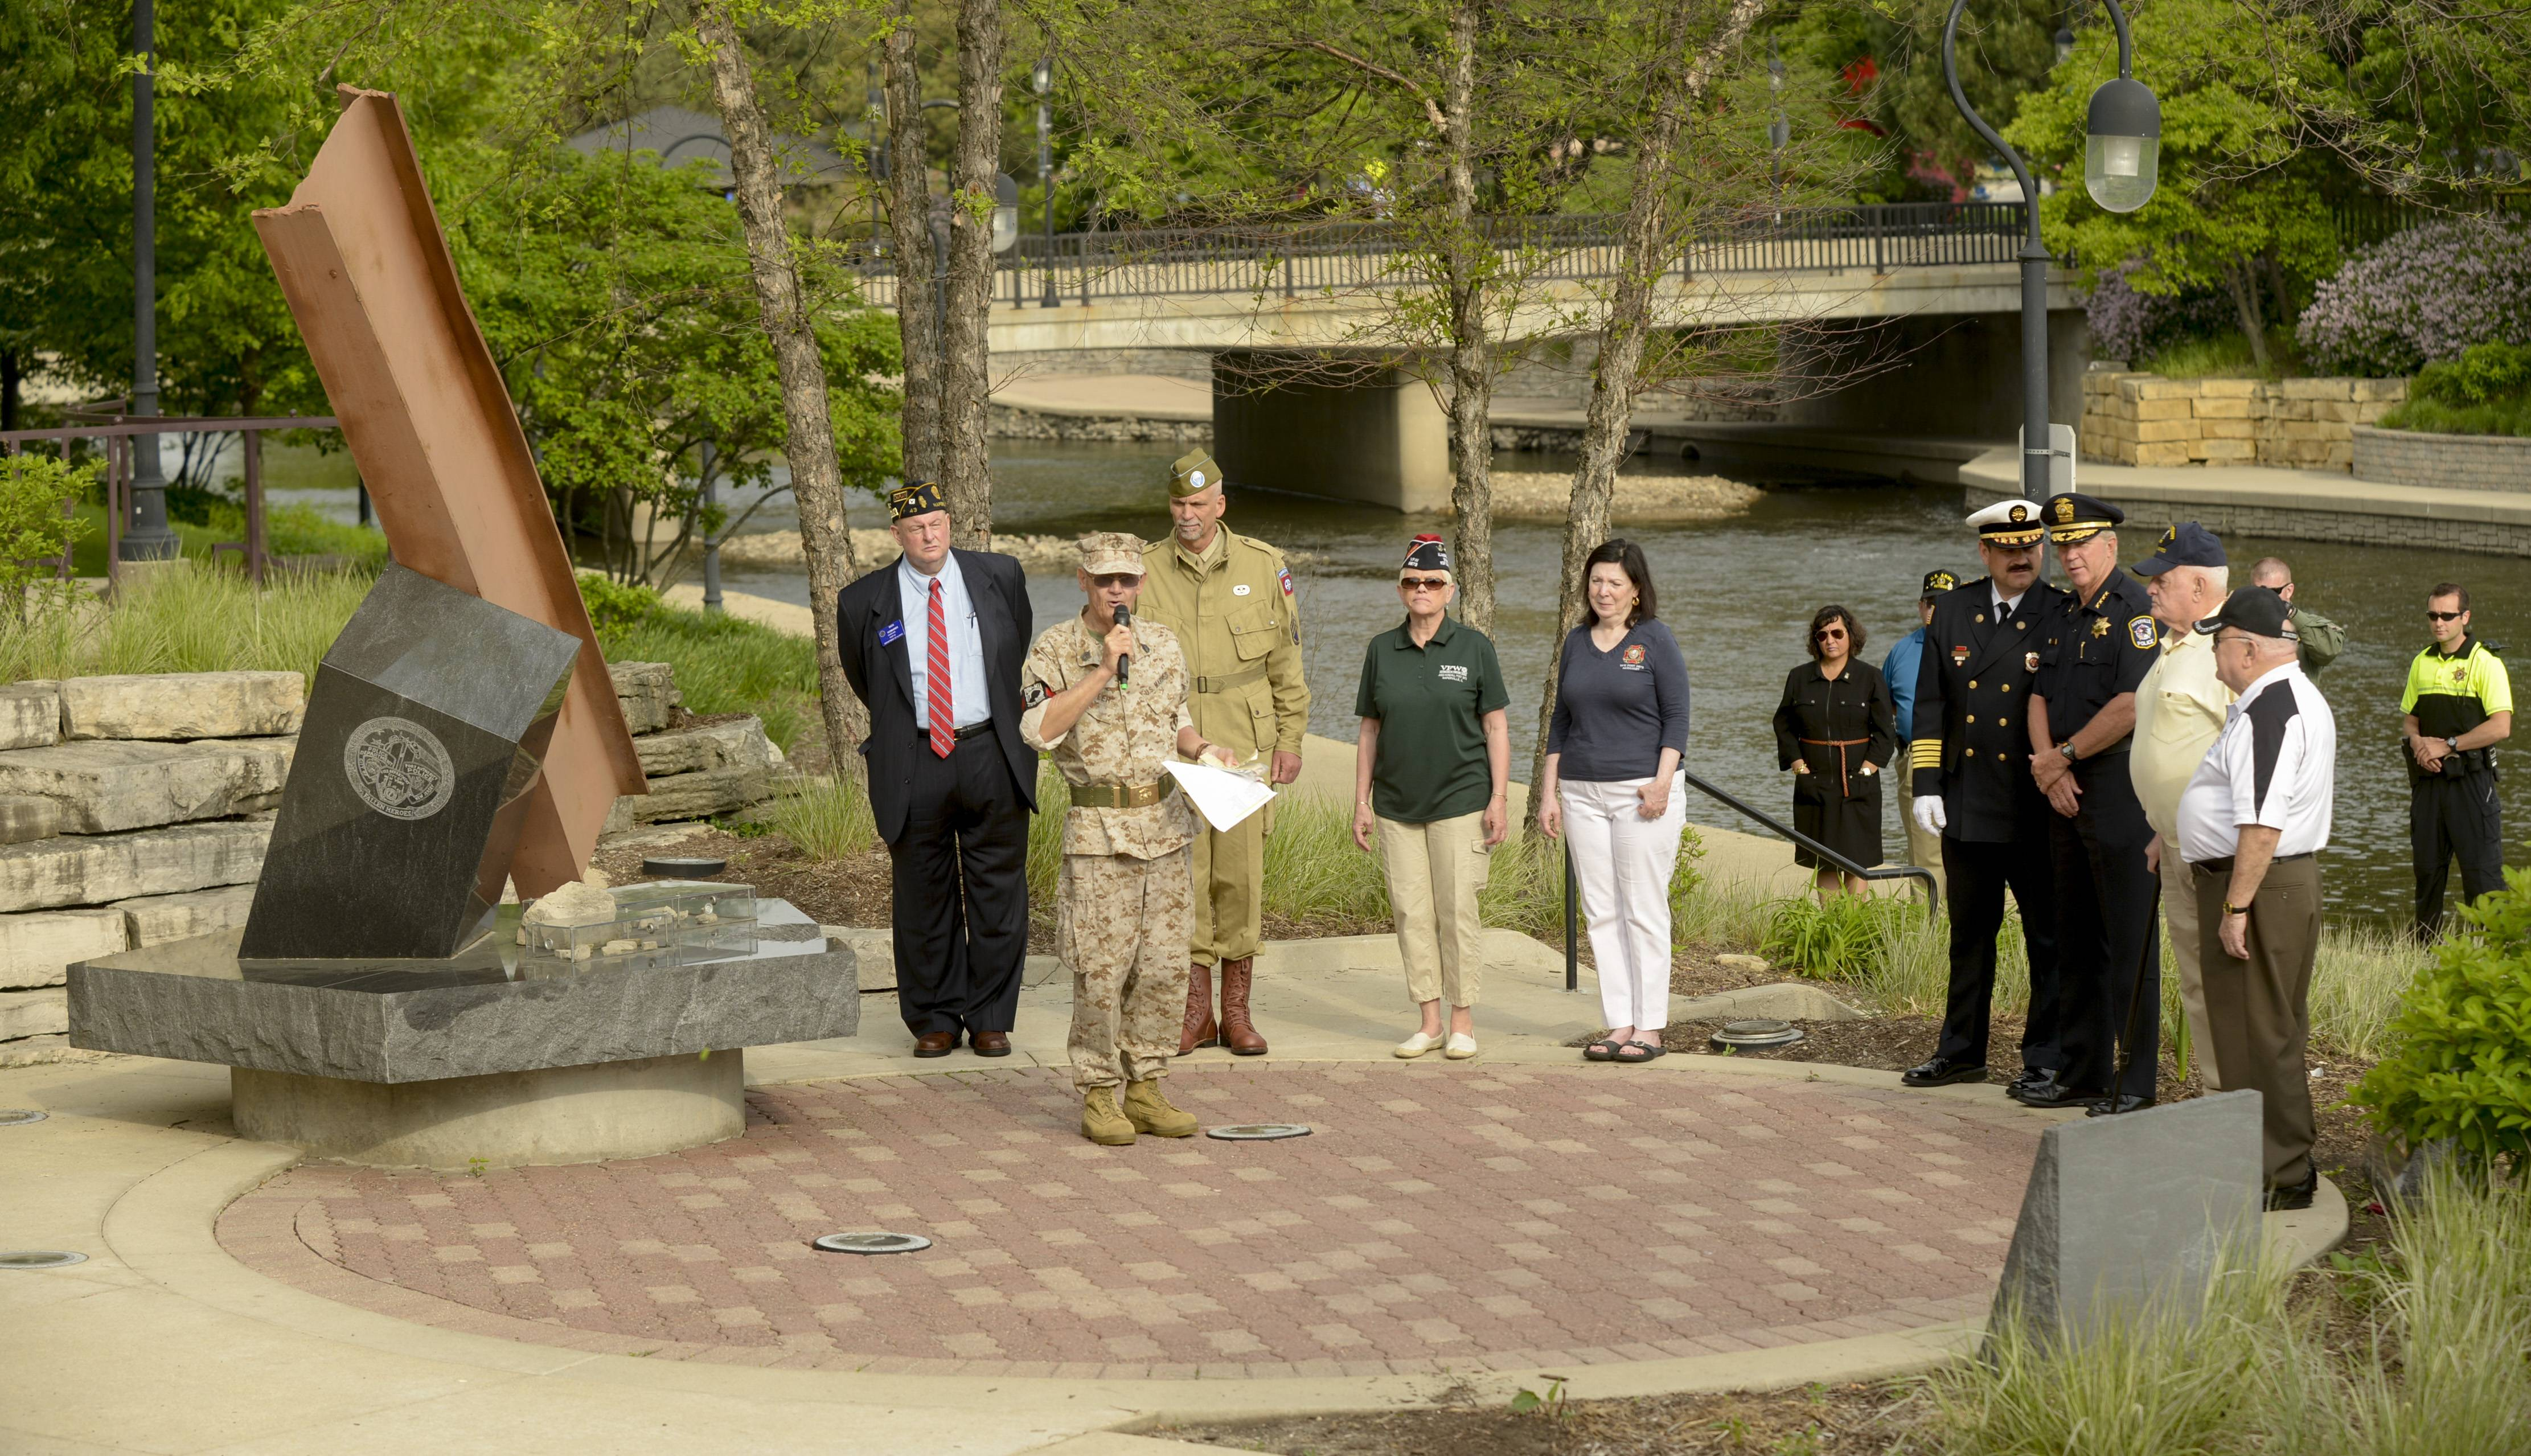 Naperville's Memorial Day service at the Cmdr. Dan Shanower Sept. 11 memorial.